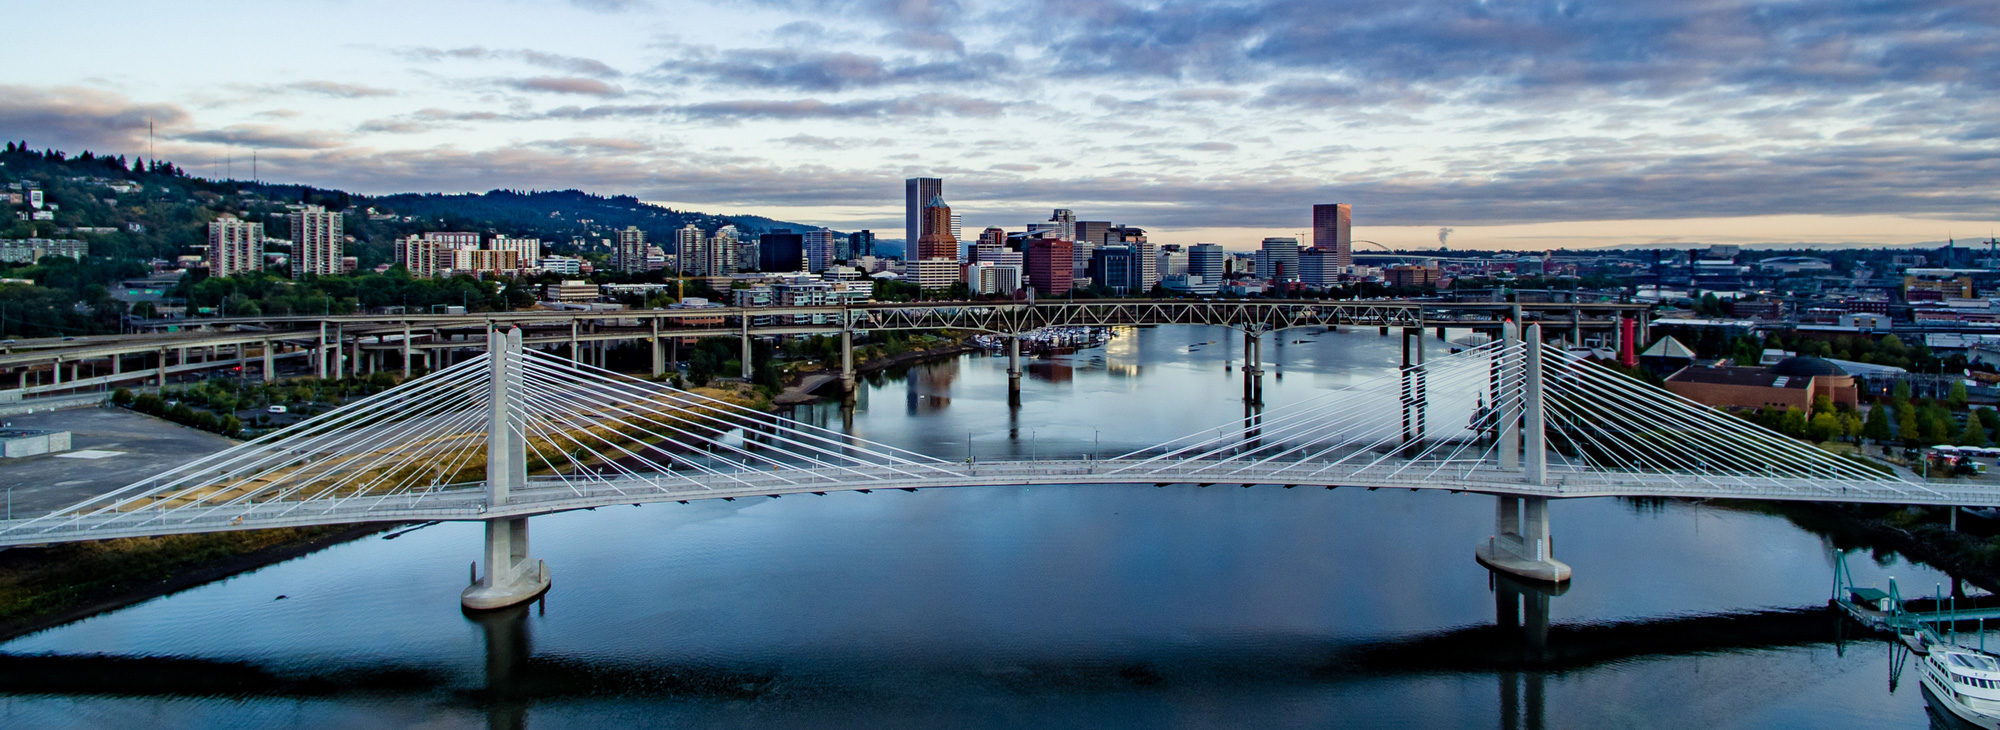 Portland Region Trainings - Travel Oregon